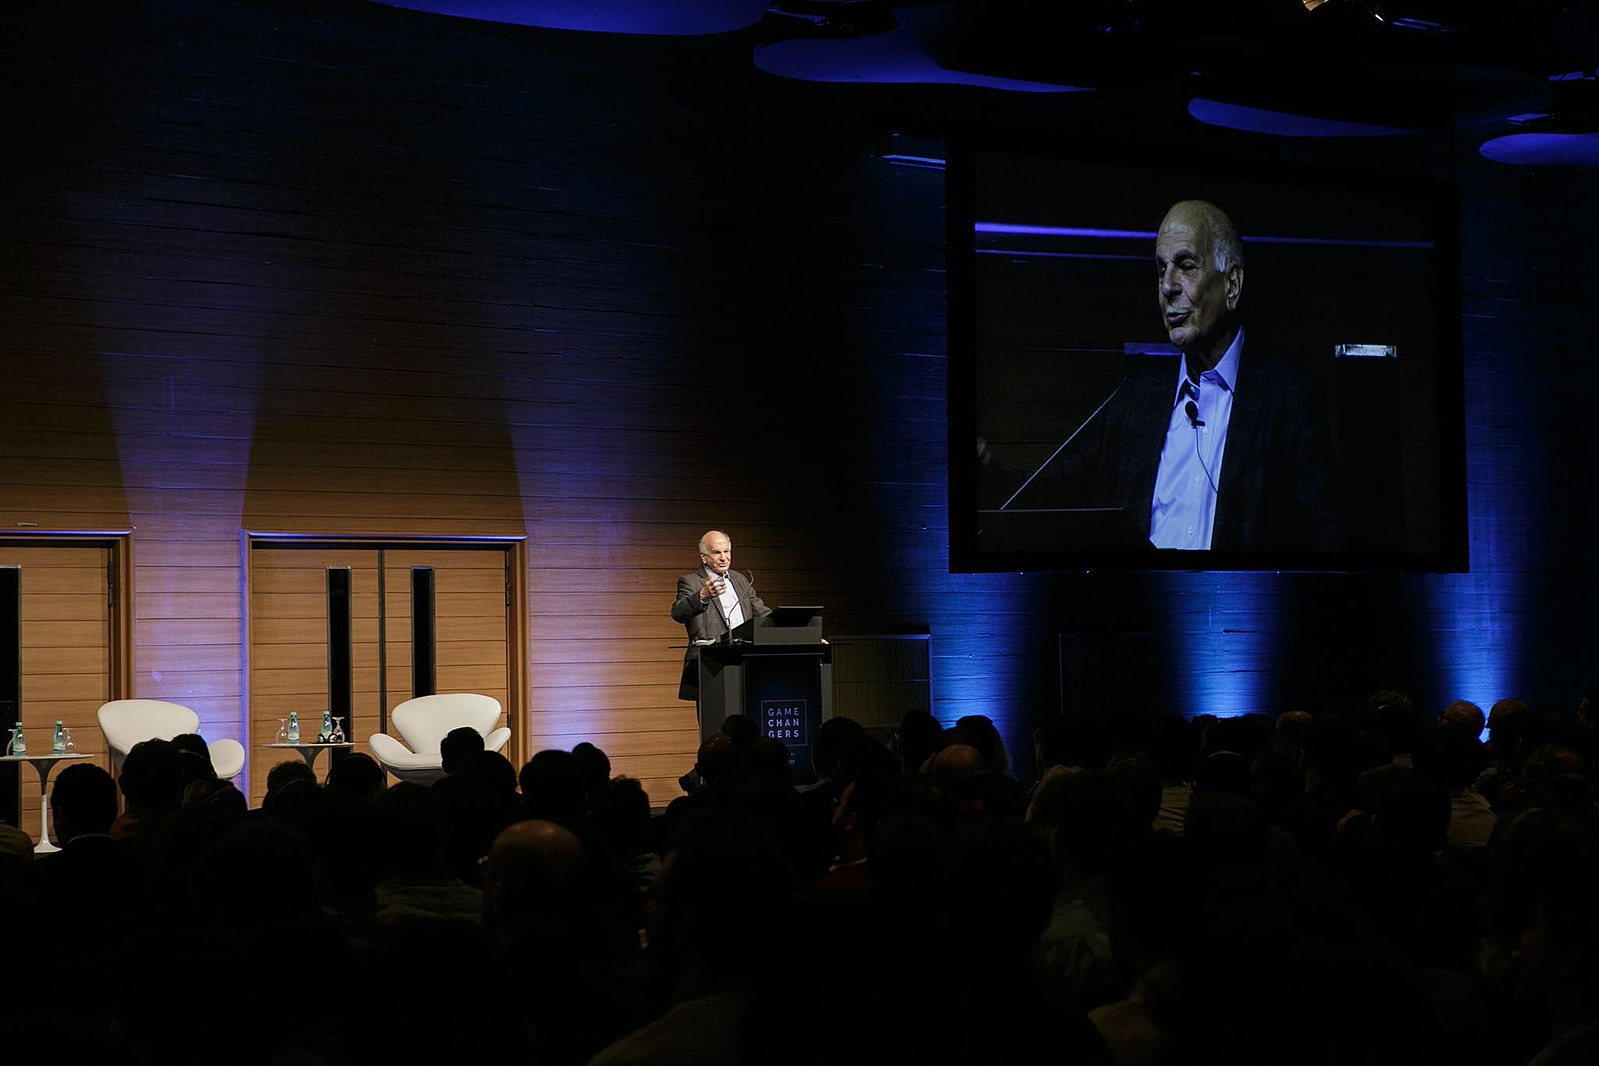 Daniel Kahneman giving a lecture. Image from Wikimedia.